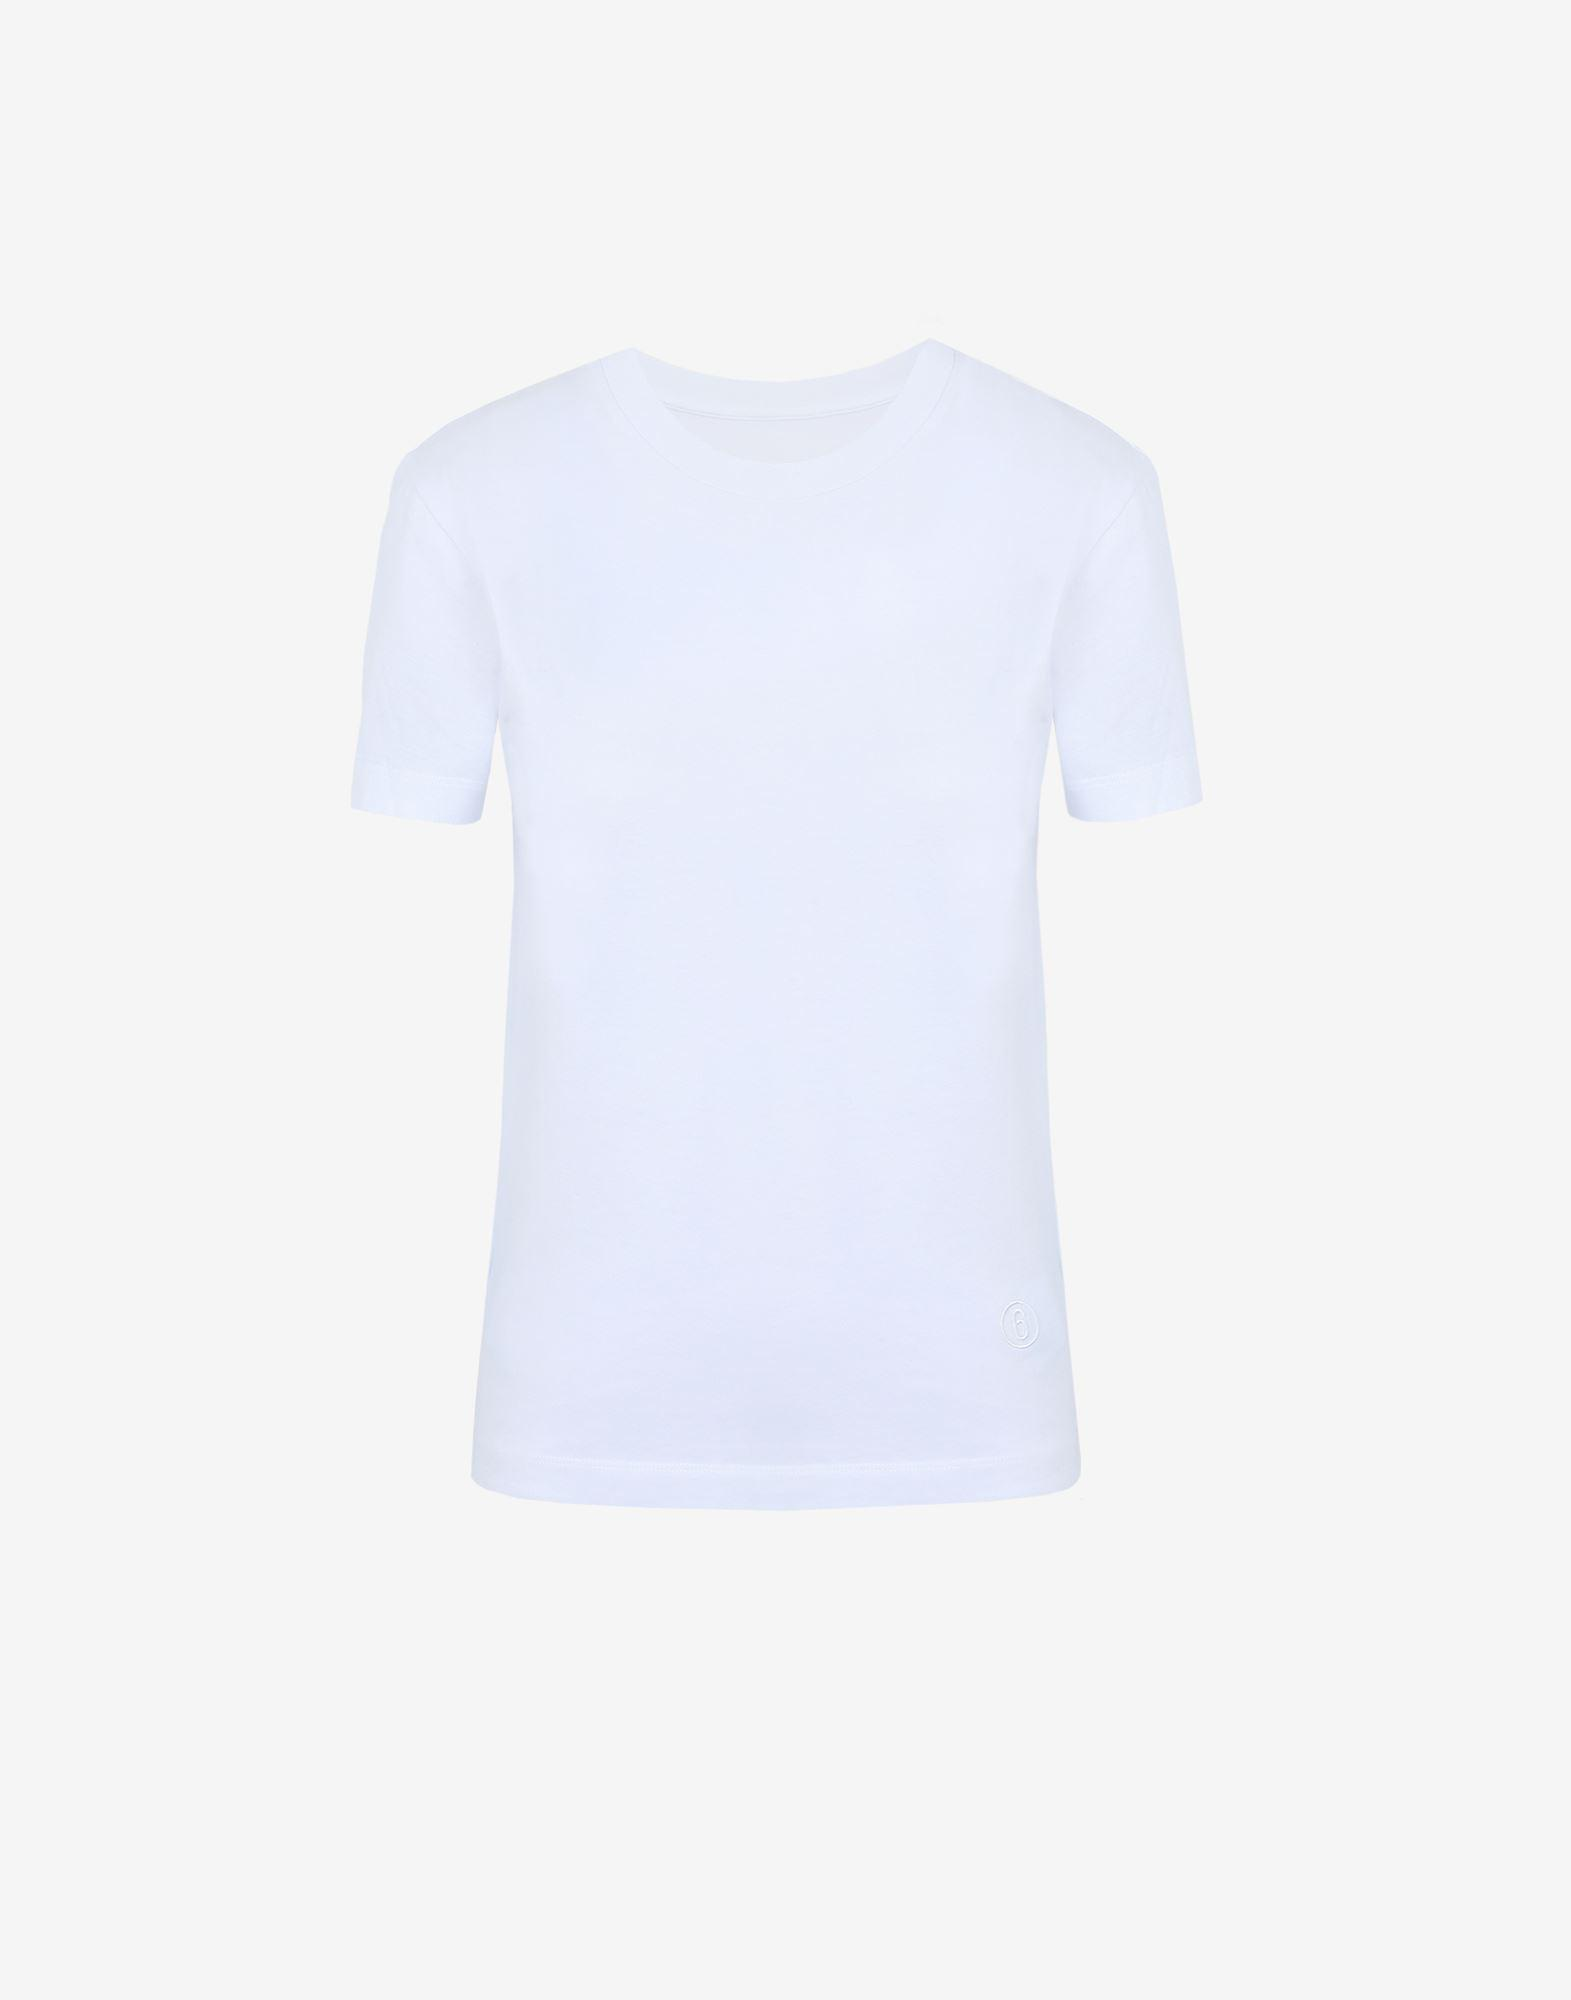 3-pack jersey tops 1